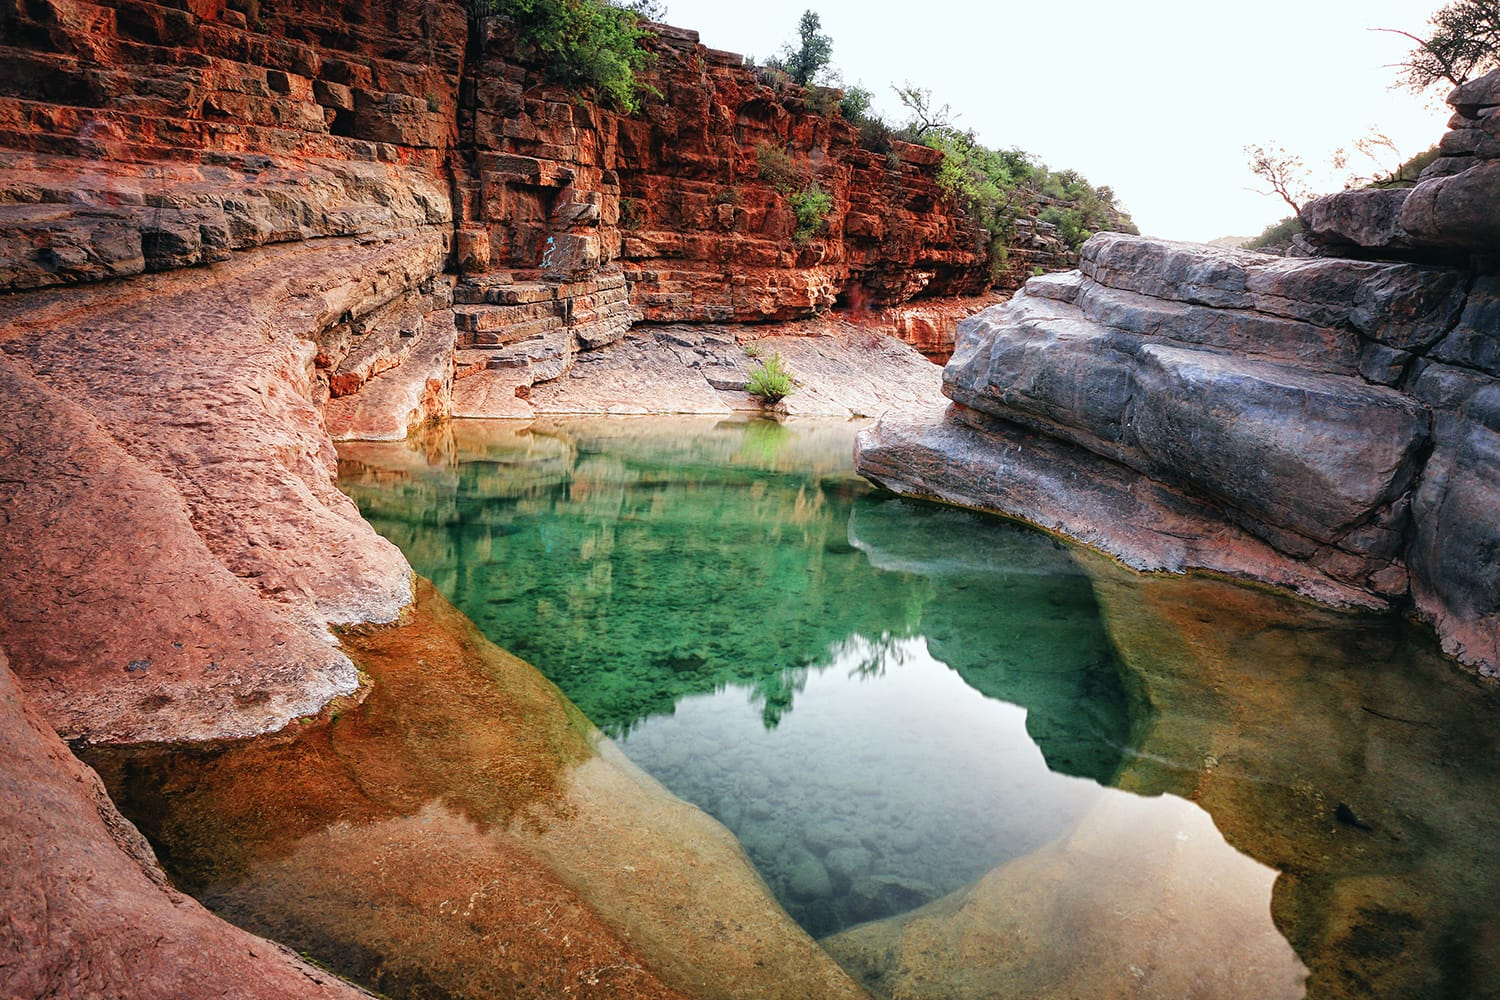 Natural pool at the Paradise Valley in Morocco